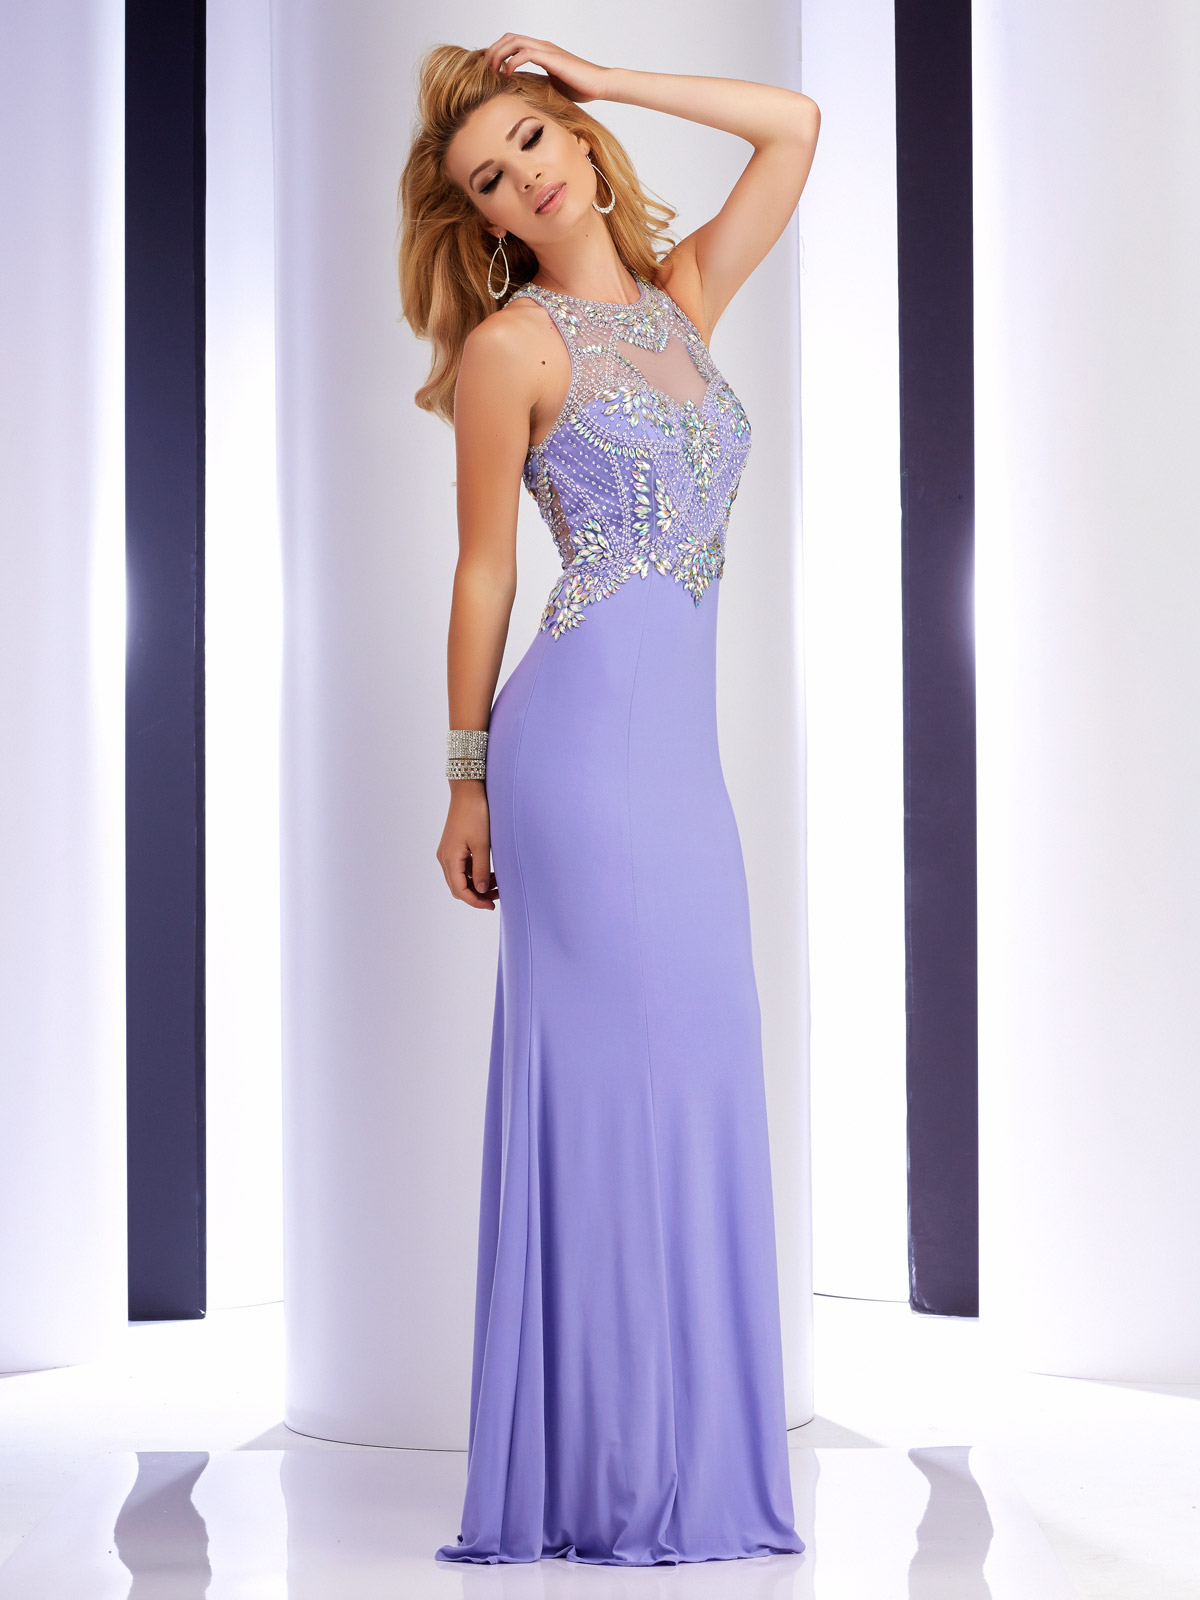 Prom Dresses Jcpenney 2018 - Prom Dresses 2018